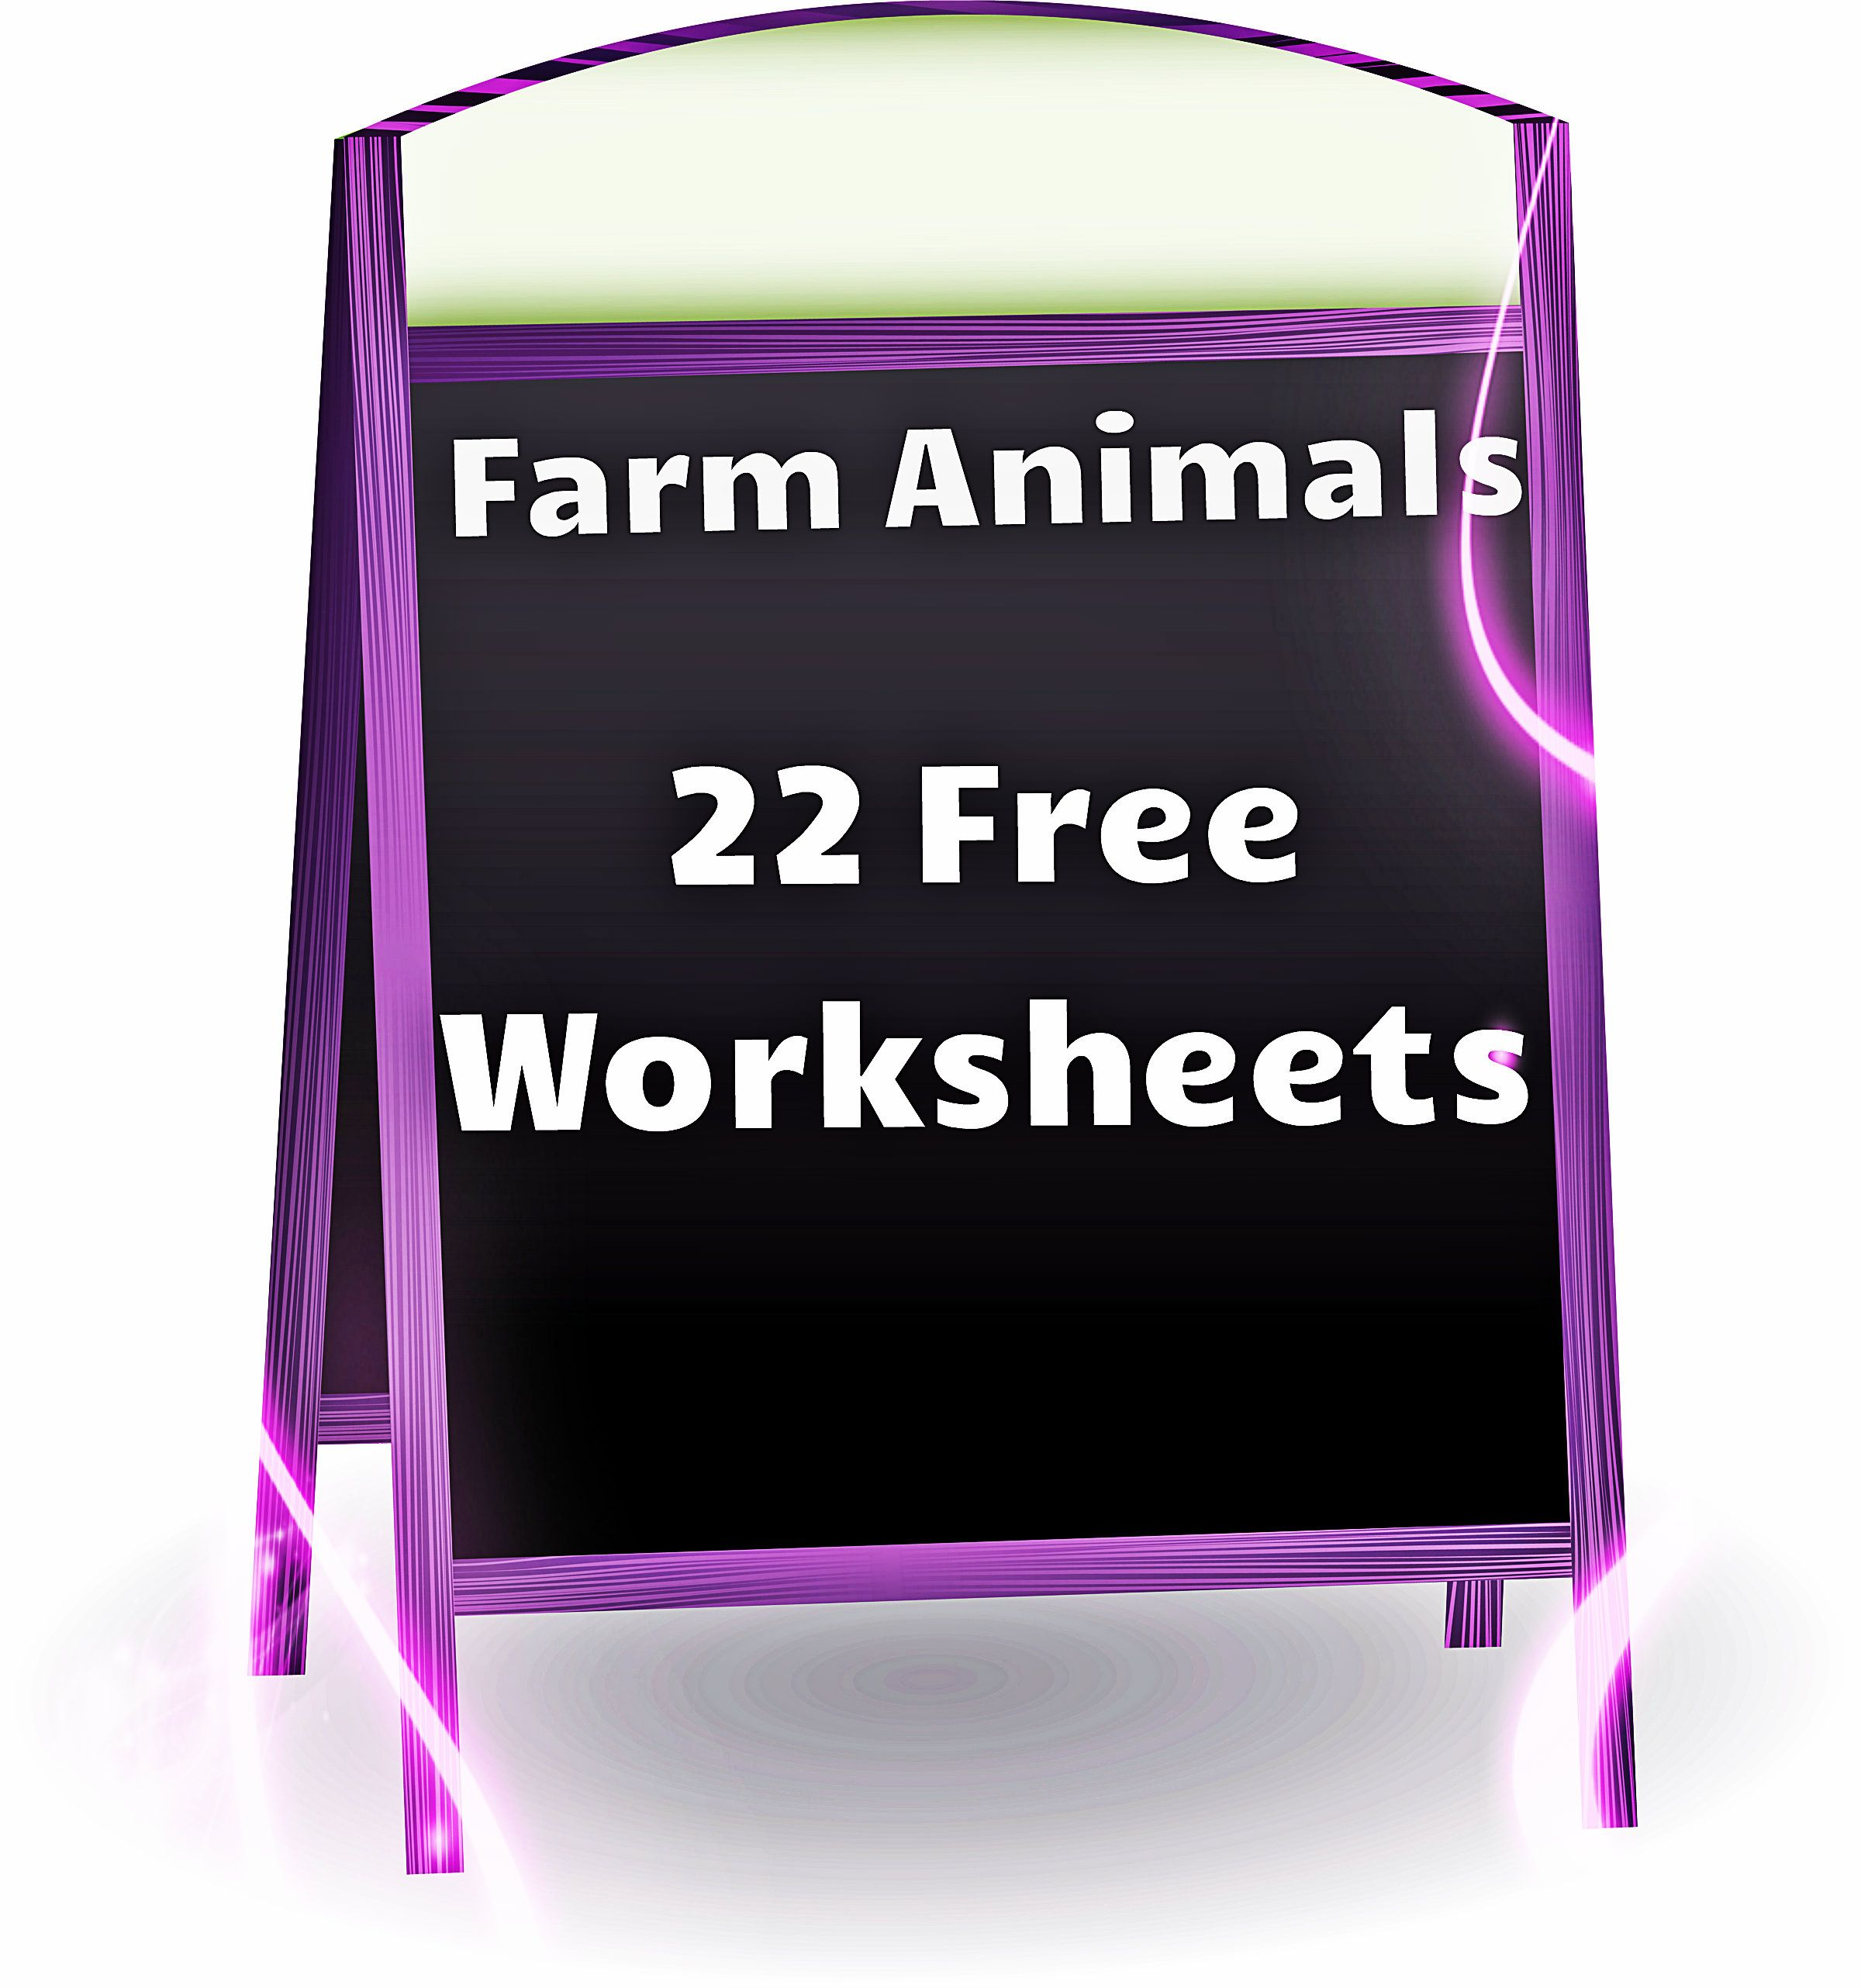 Farm Animals Free Worksheets